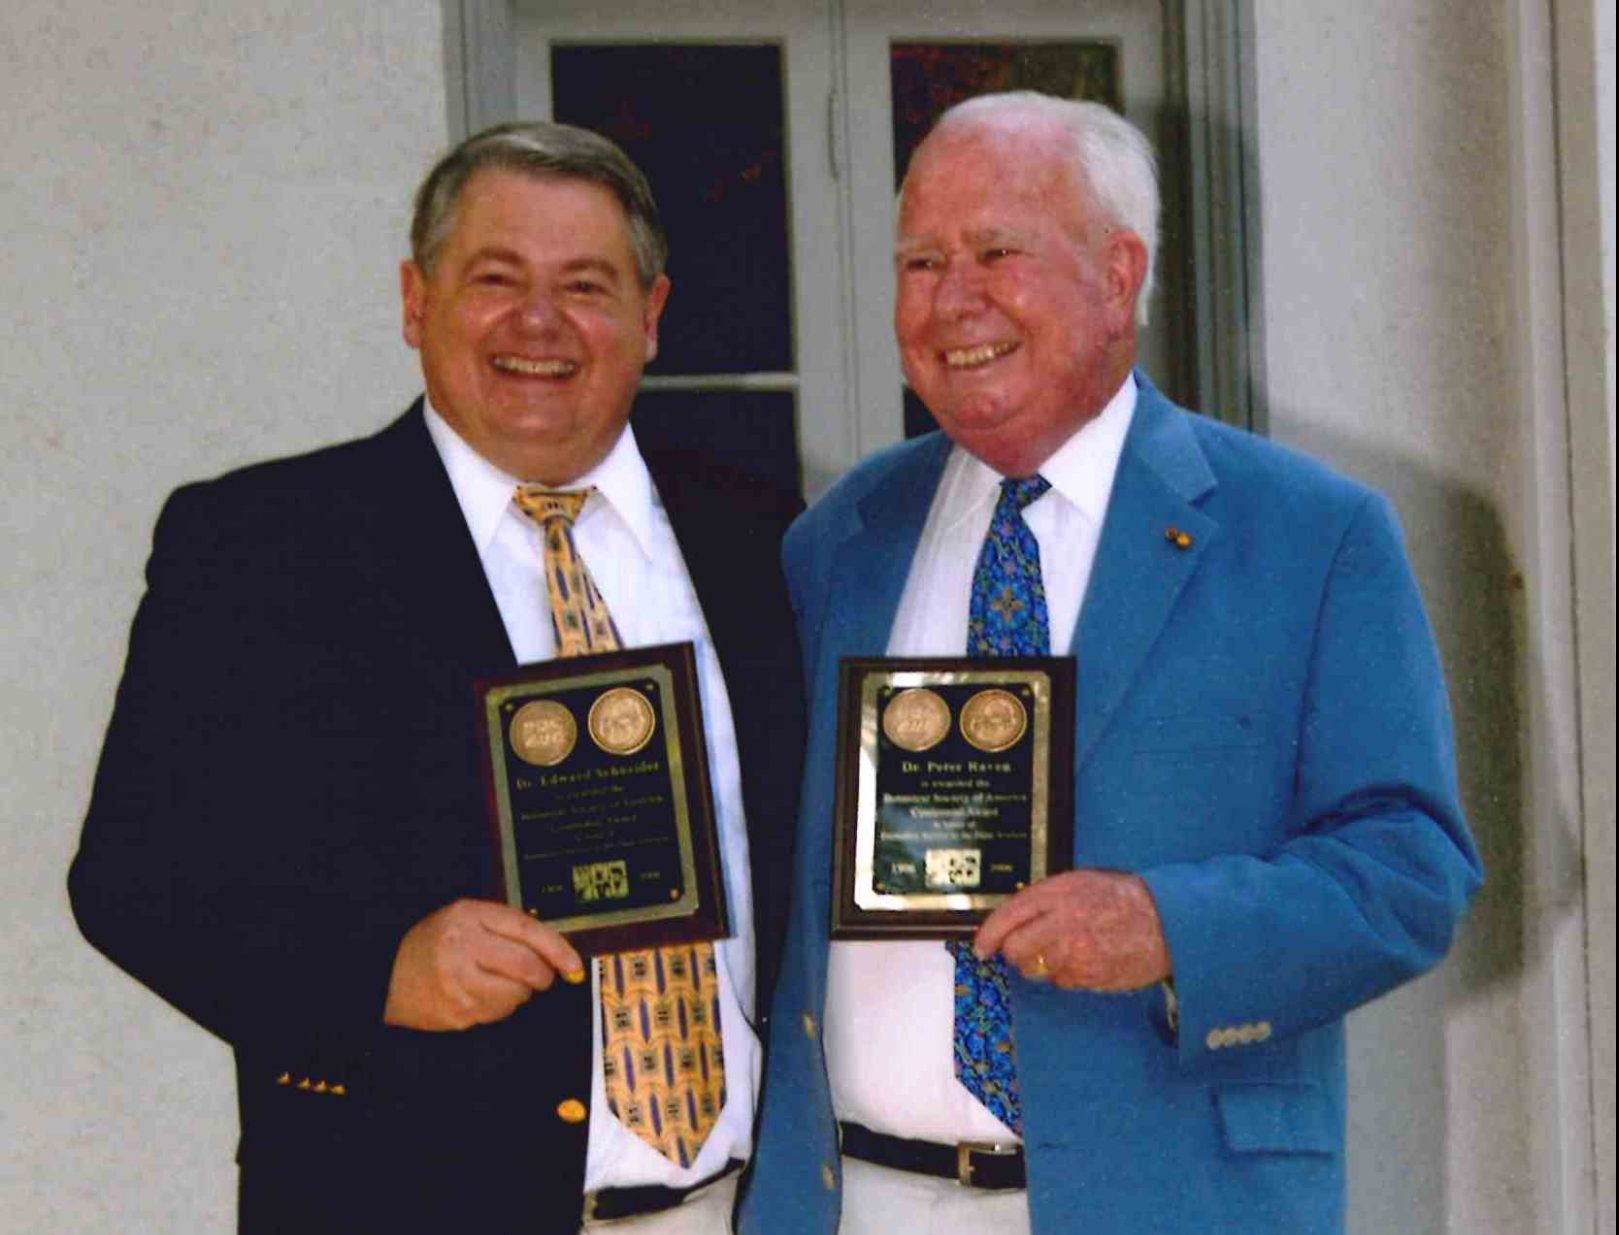 In 2006, the Botanical Society of America marked their 100 years as an organization with the creation of the Centennial Award. Both Dr. Edward Schneider and Dr. Peter Raven were presented the award, recognizing outstanding service to the plant sciences and the Society.